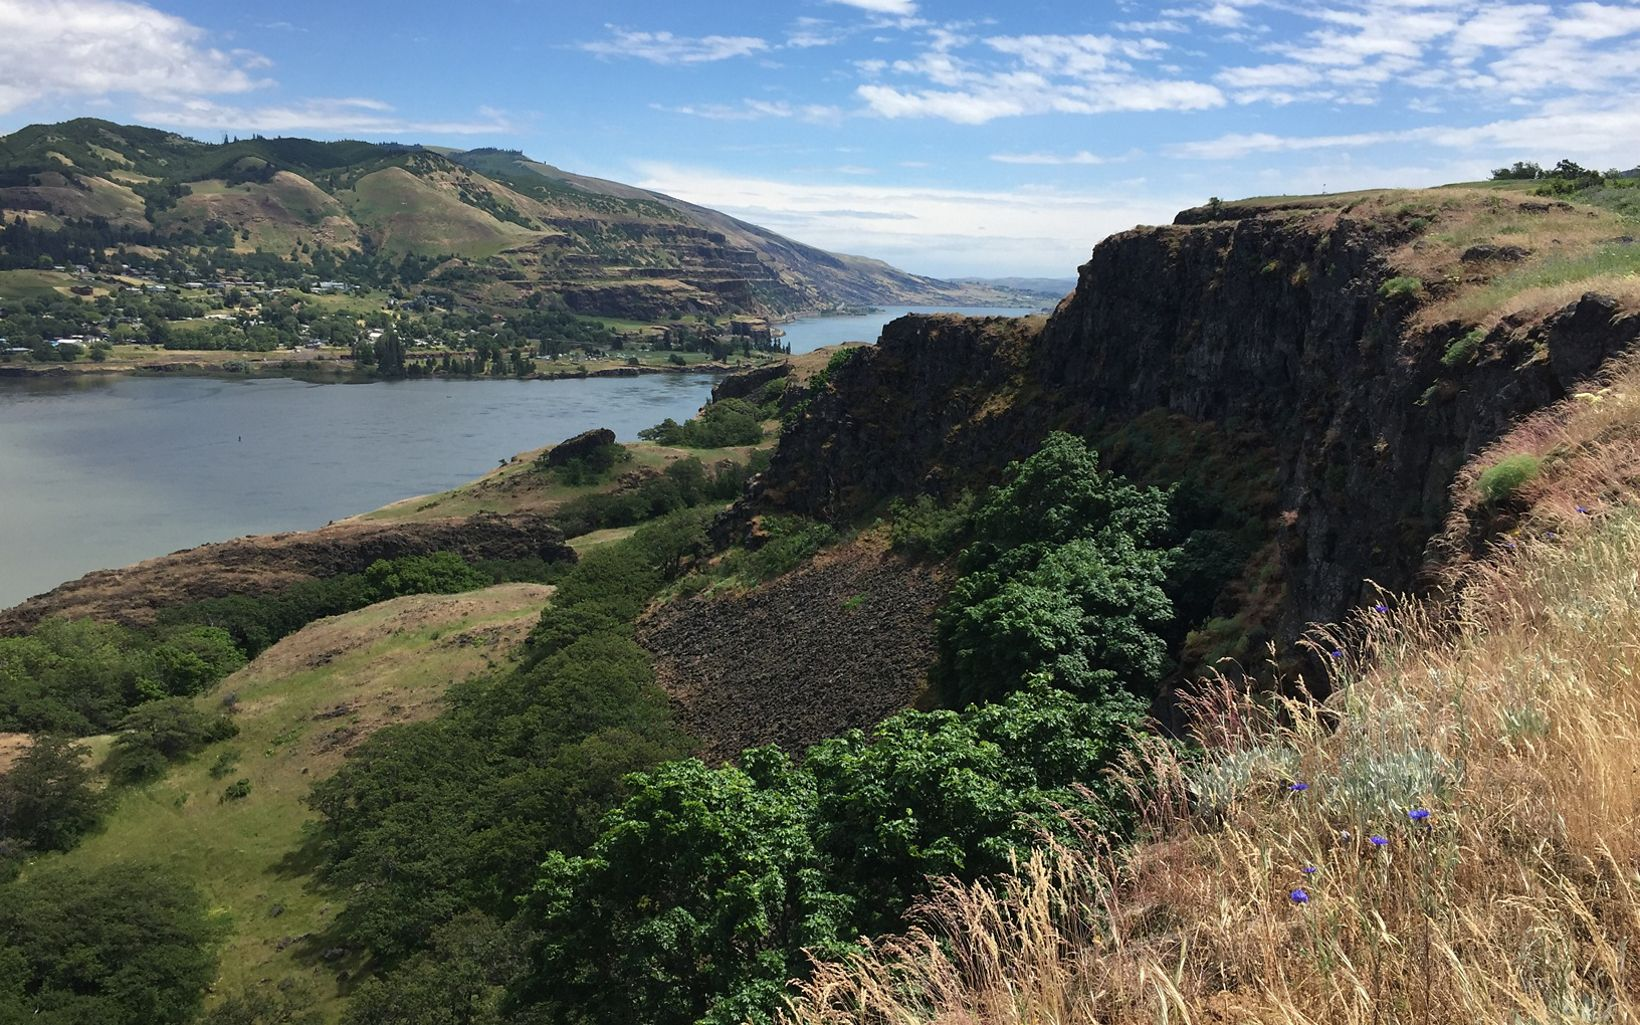 Columbia River Gorge view from Tom McCall Preserve in Rowena, Oregon